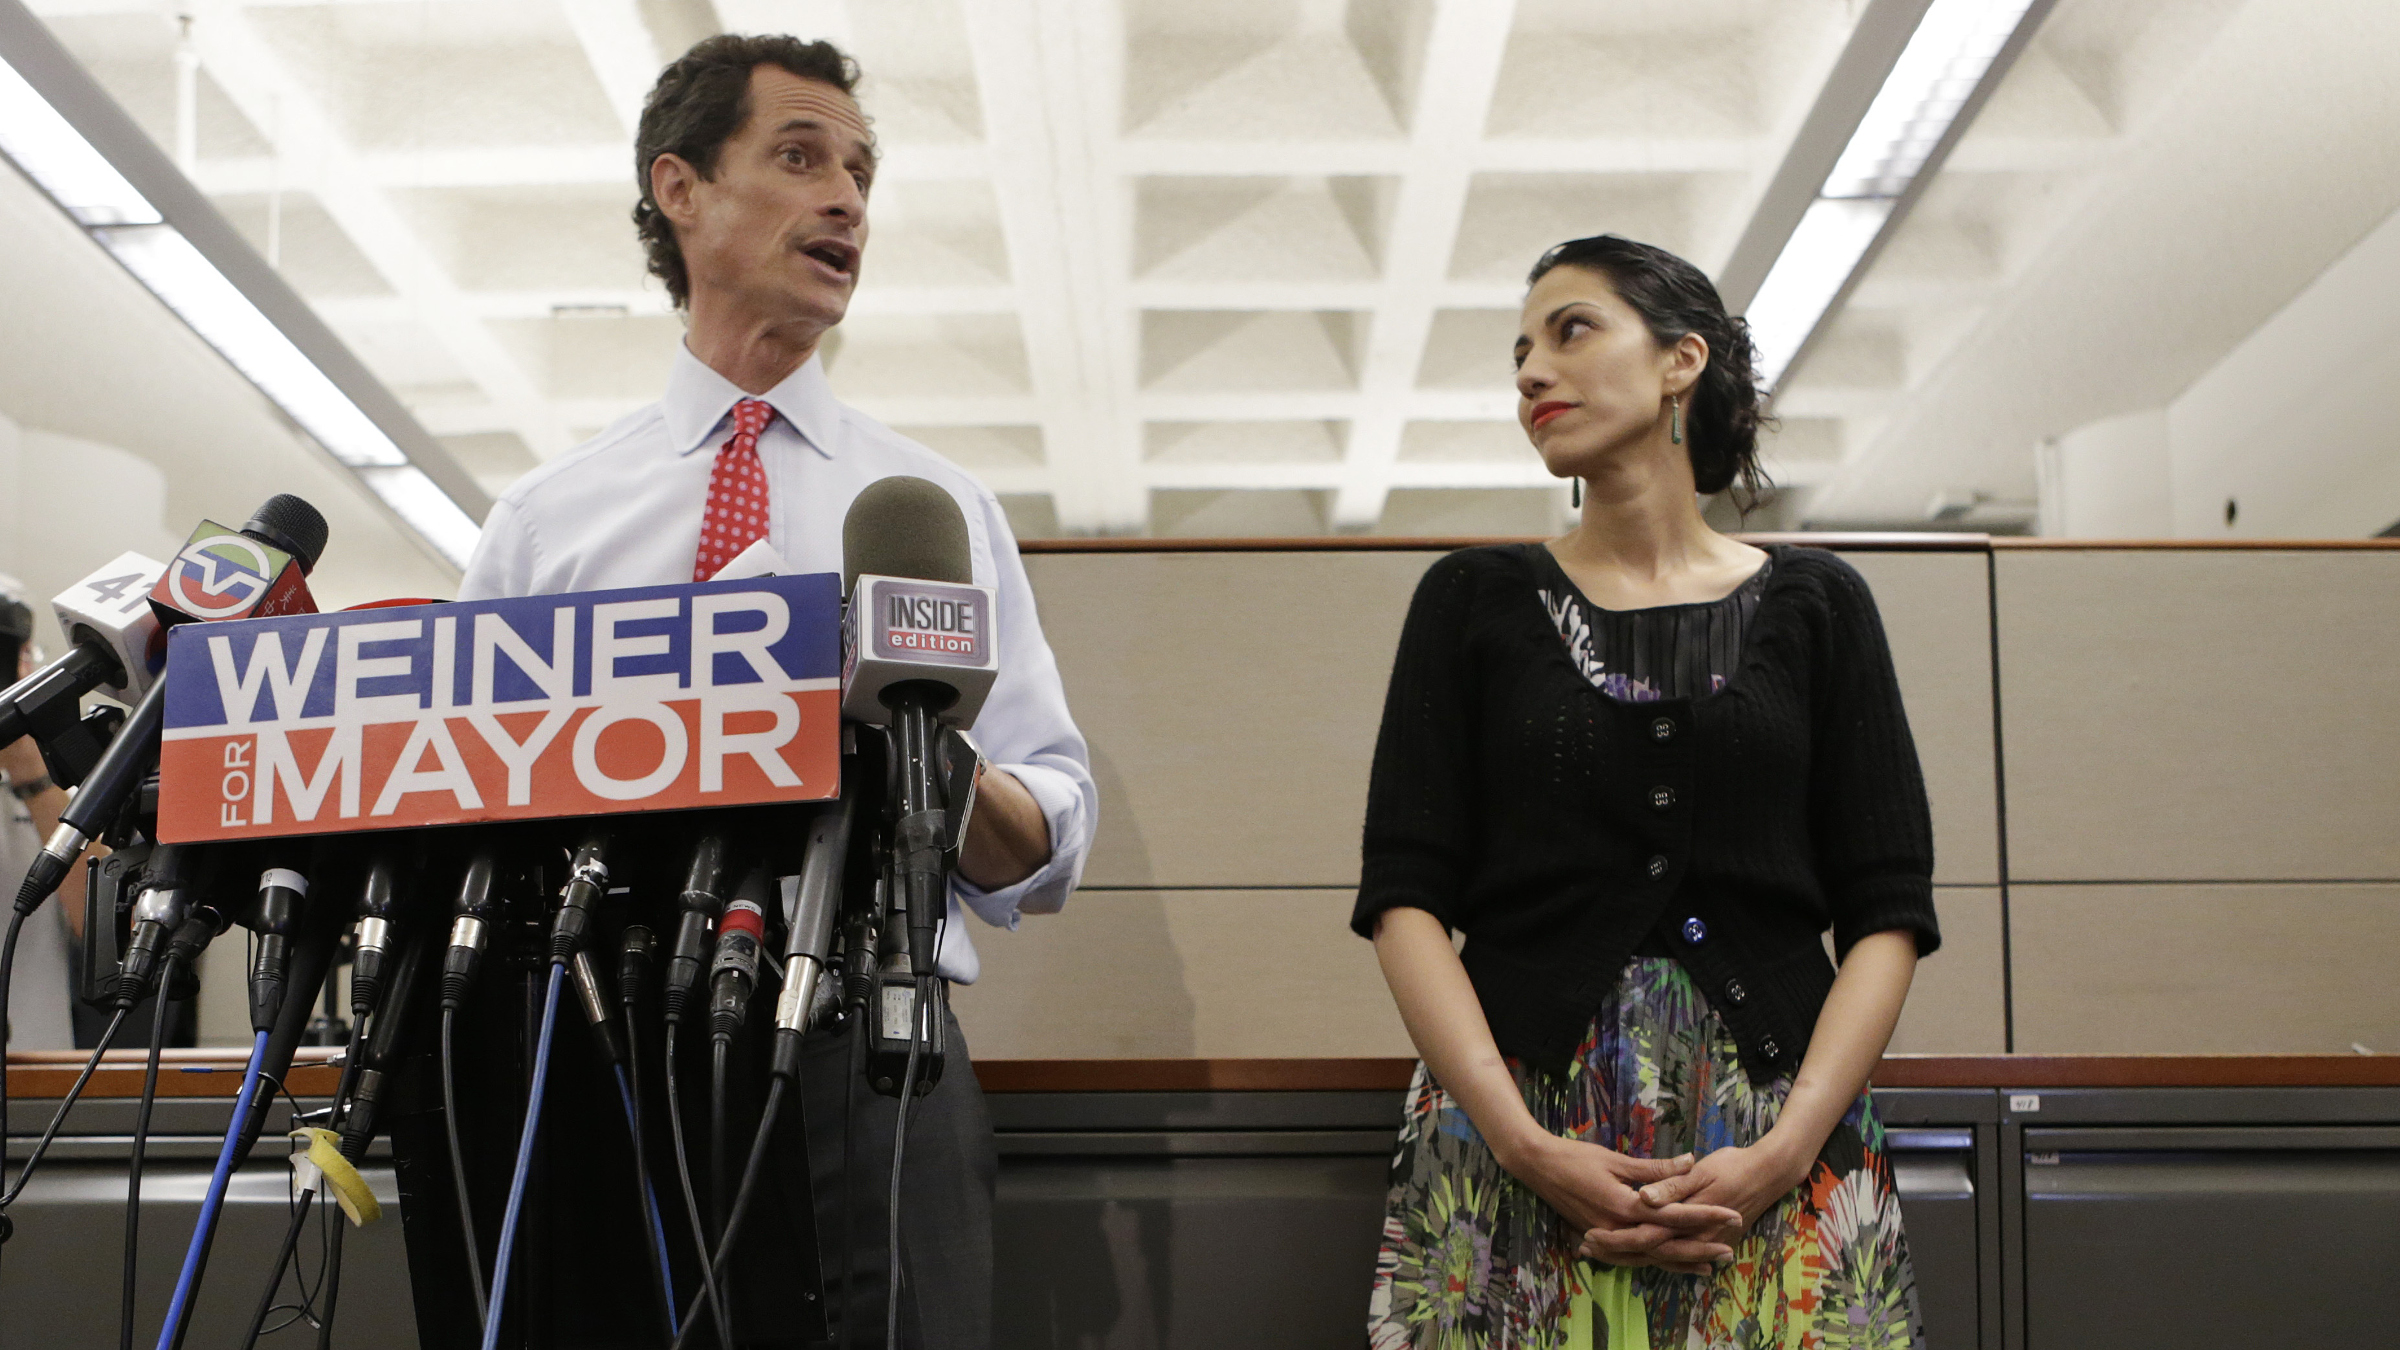 Huma Abedin, right, glances at her husband, New York City mayoral candidate Anthony Weiner as he speaks at a press conference at the Gay Men's Health Crisis, Tuesday, July 23, 2013, in New York. The former congressman says he's not dropping out of the New York City mayoral race in light of newly revealed explicit online correspondence with a young woman.